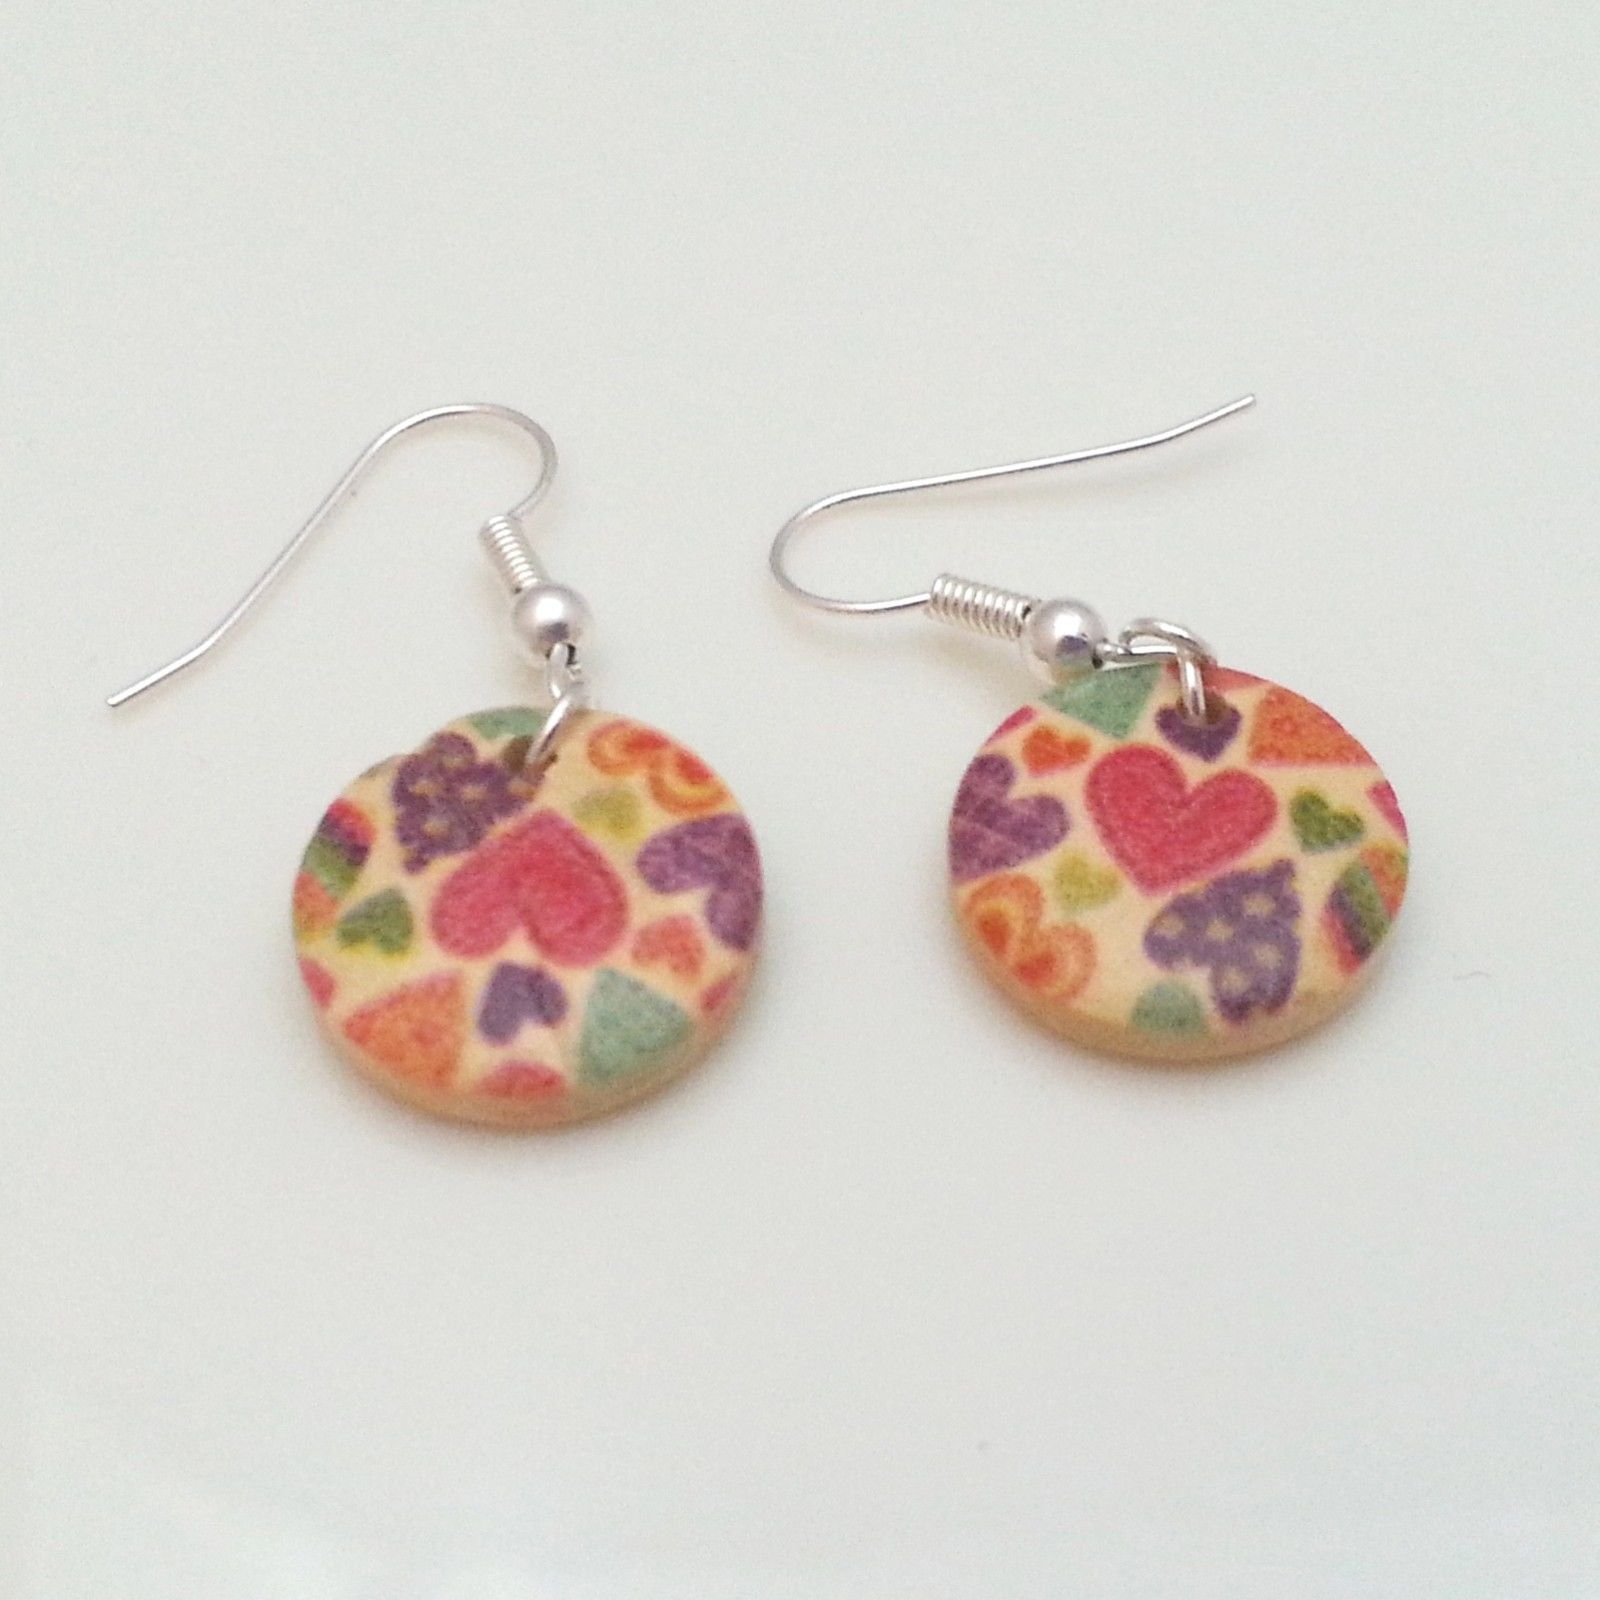 Light-Wooden-Jewellery-Earrings-Dangle-Disc-Round-Wood-Coloured-Hearts-New-400739839834